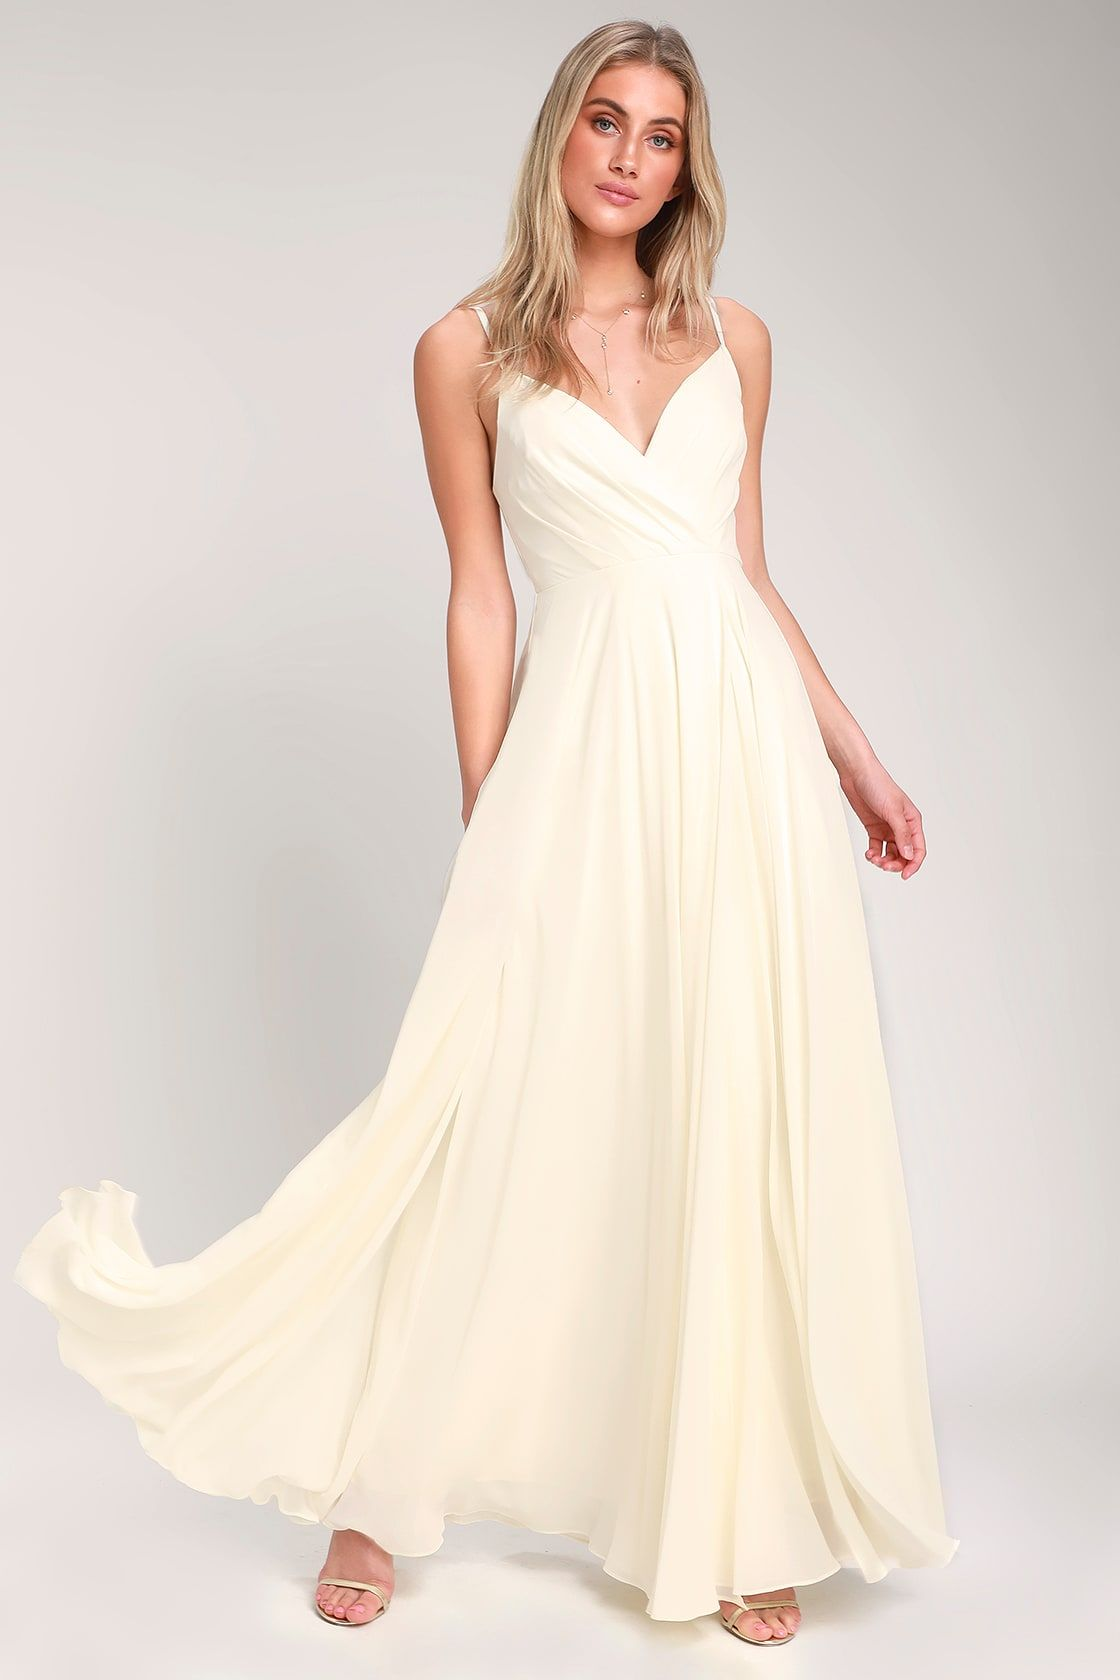 53ce7834d30f Lulus   All About Love Cream Maxi Dress   Size Small   White   100 ...